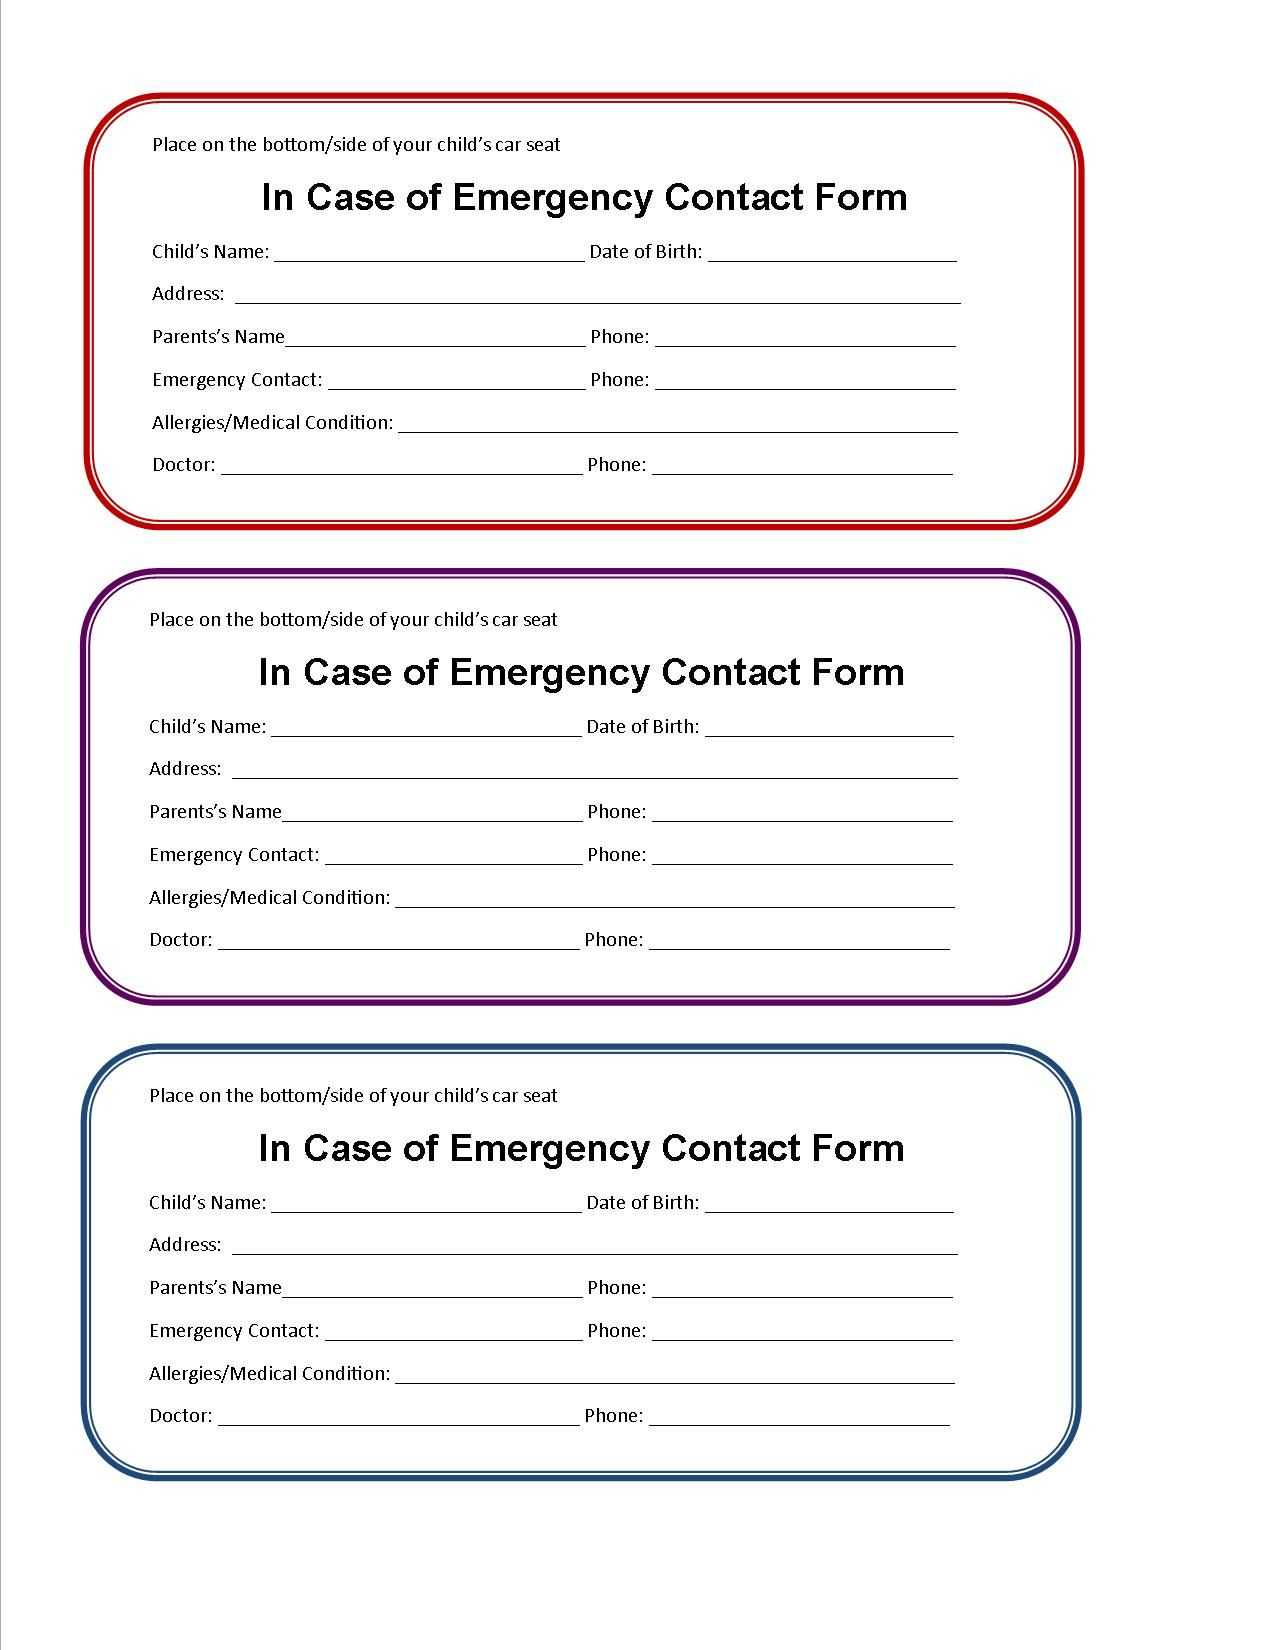 Printable Emergency Contact Form For Car Seat | Emergency Intended For Medical Alert Wallet Card Template